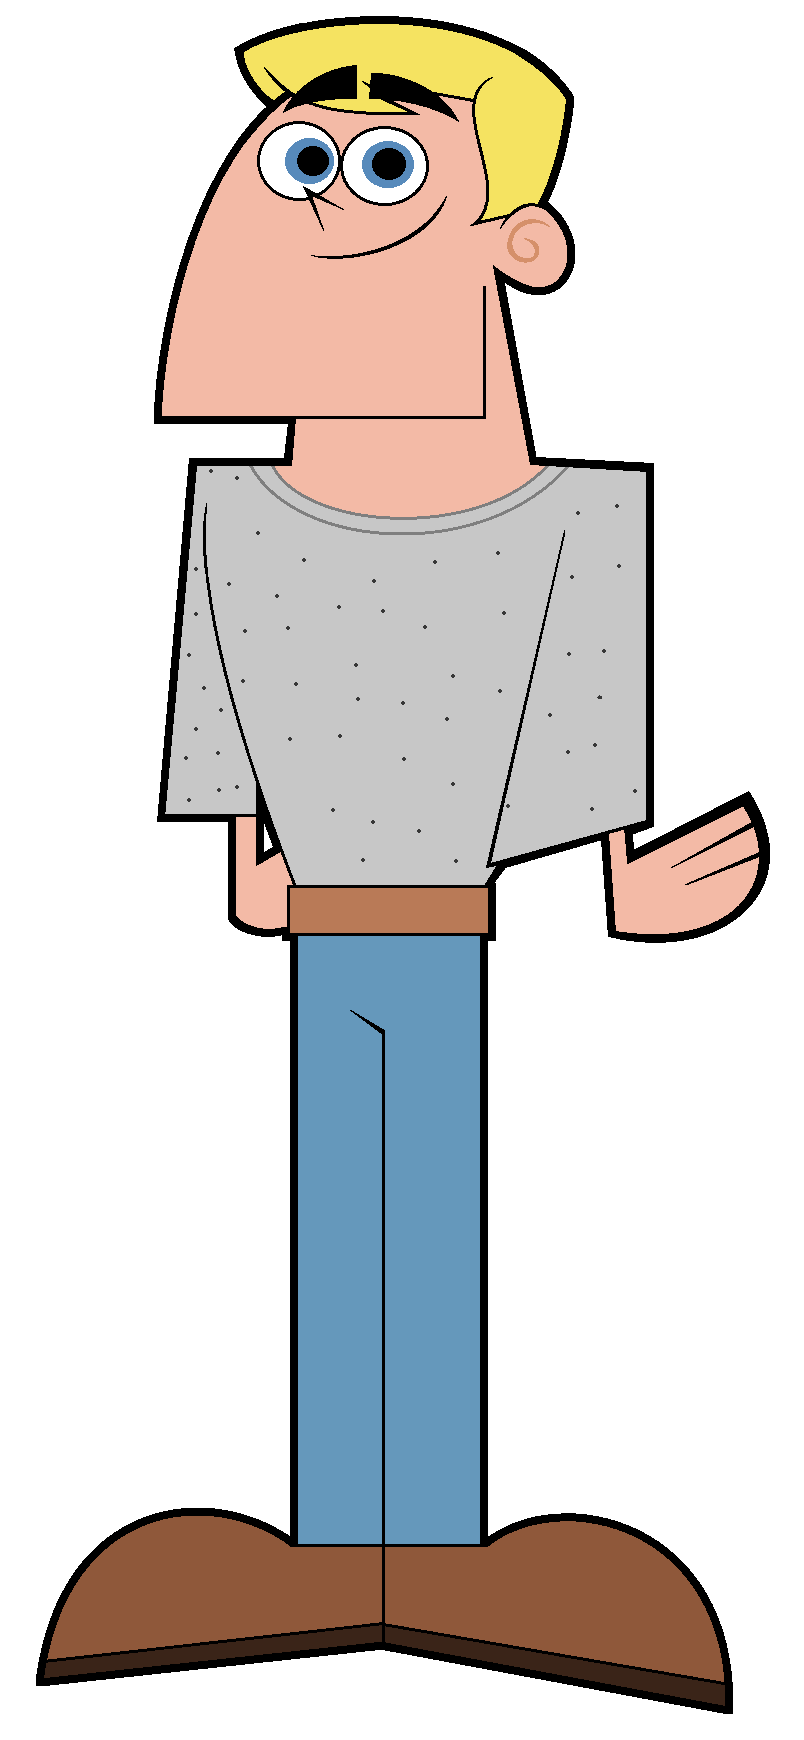 Veronica's Dad (The All New Fairly OddParents!)